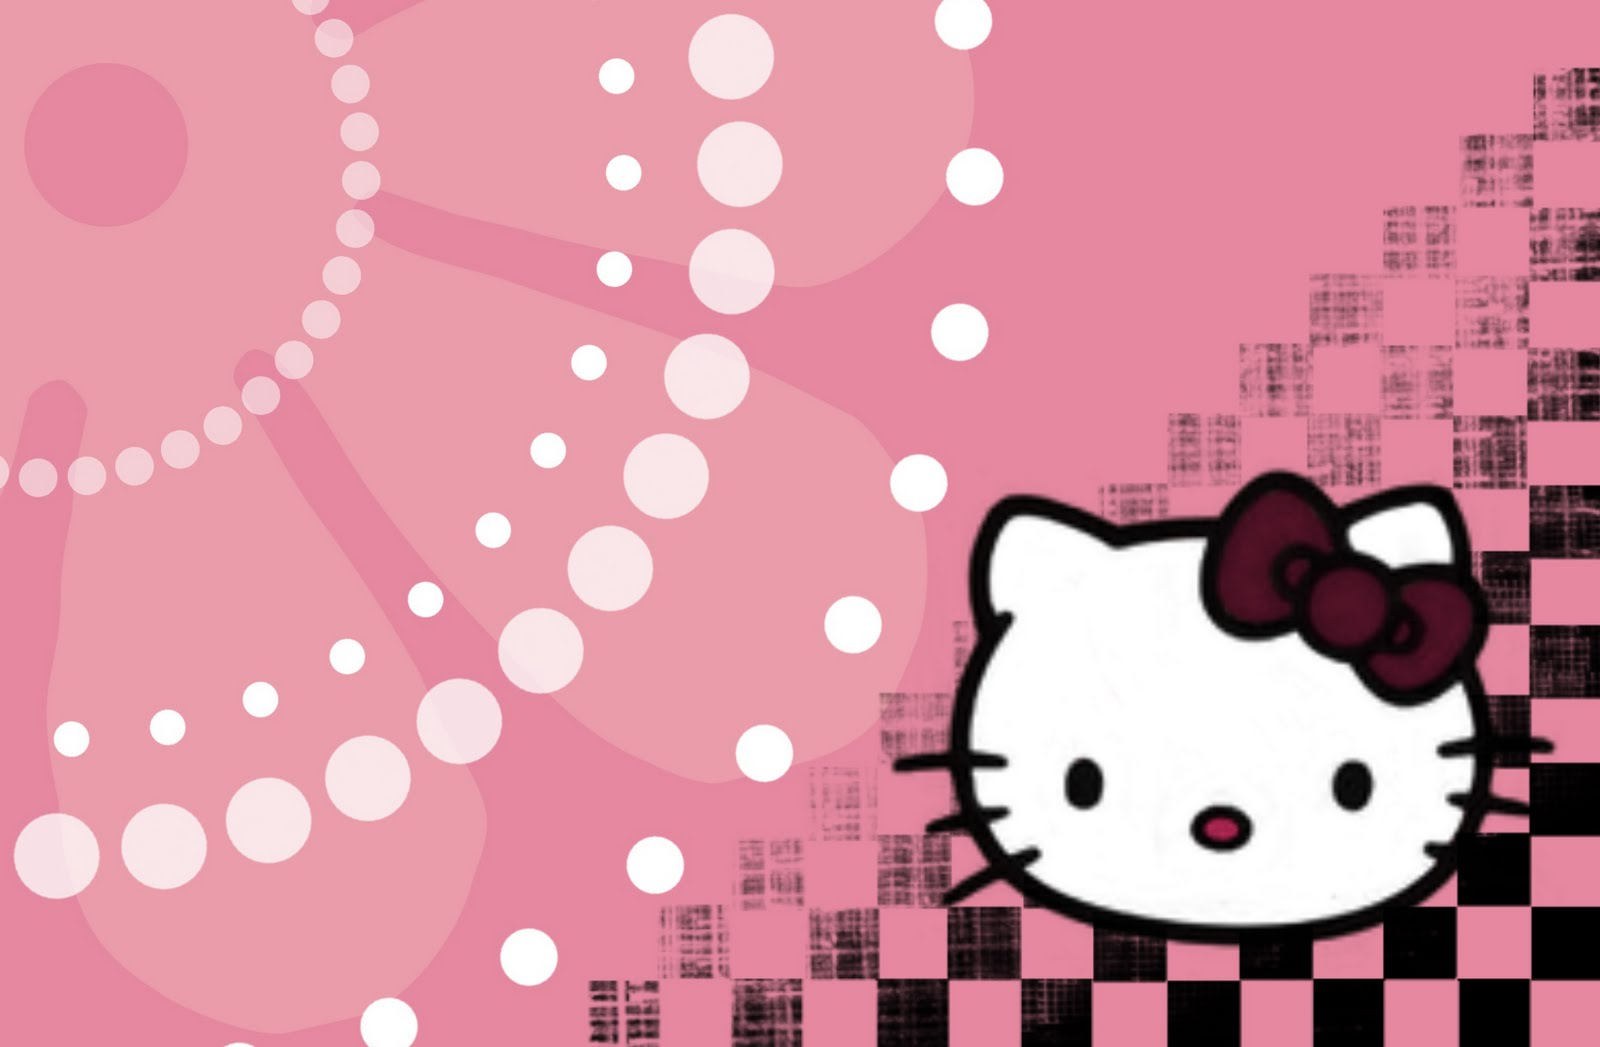 Glitter Hello Kitty Backgrounds For Computers Hello kitty desktop    Glitter Hello Kitty Backgrounds For Computers